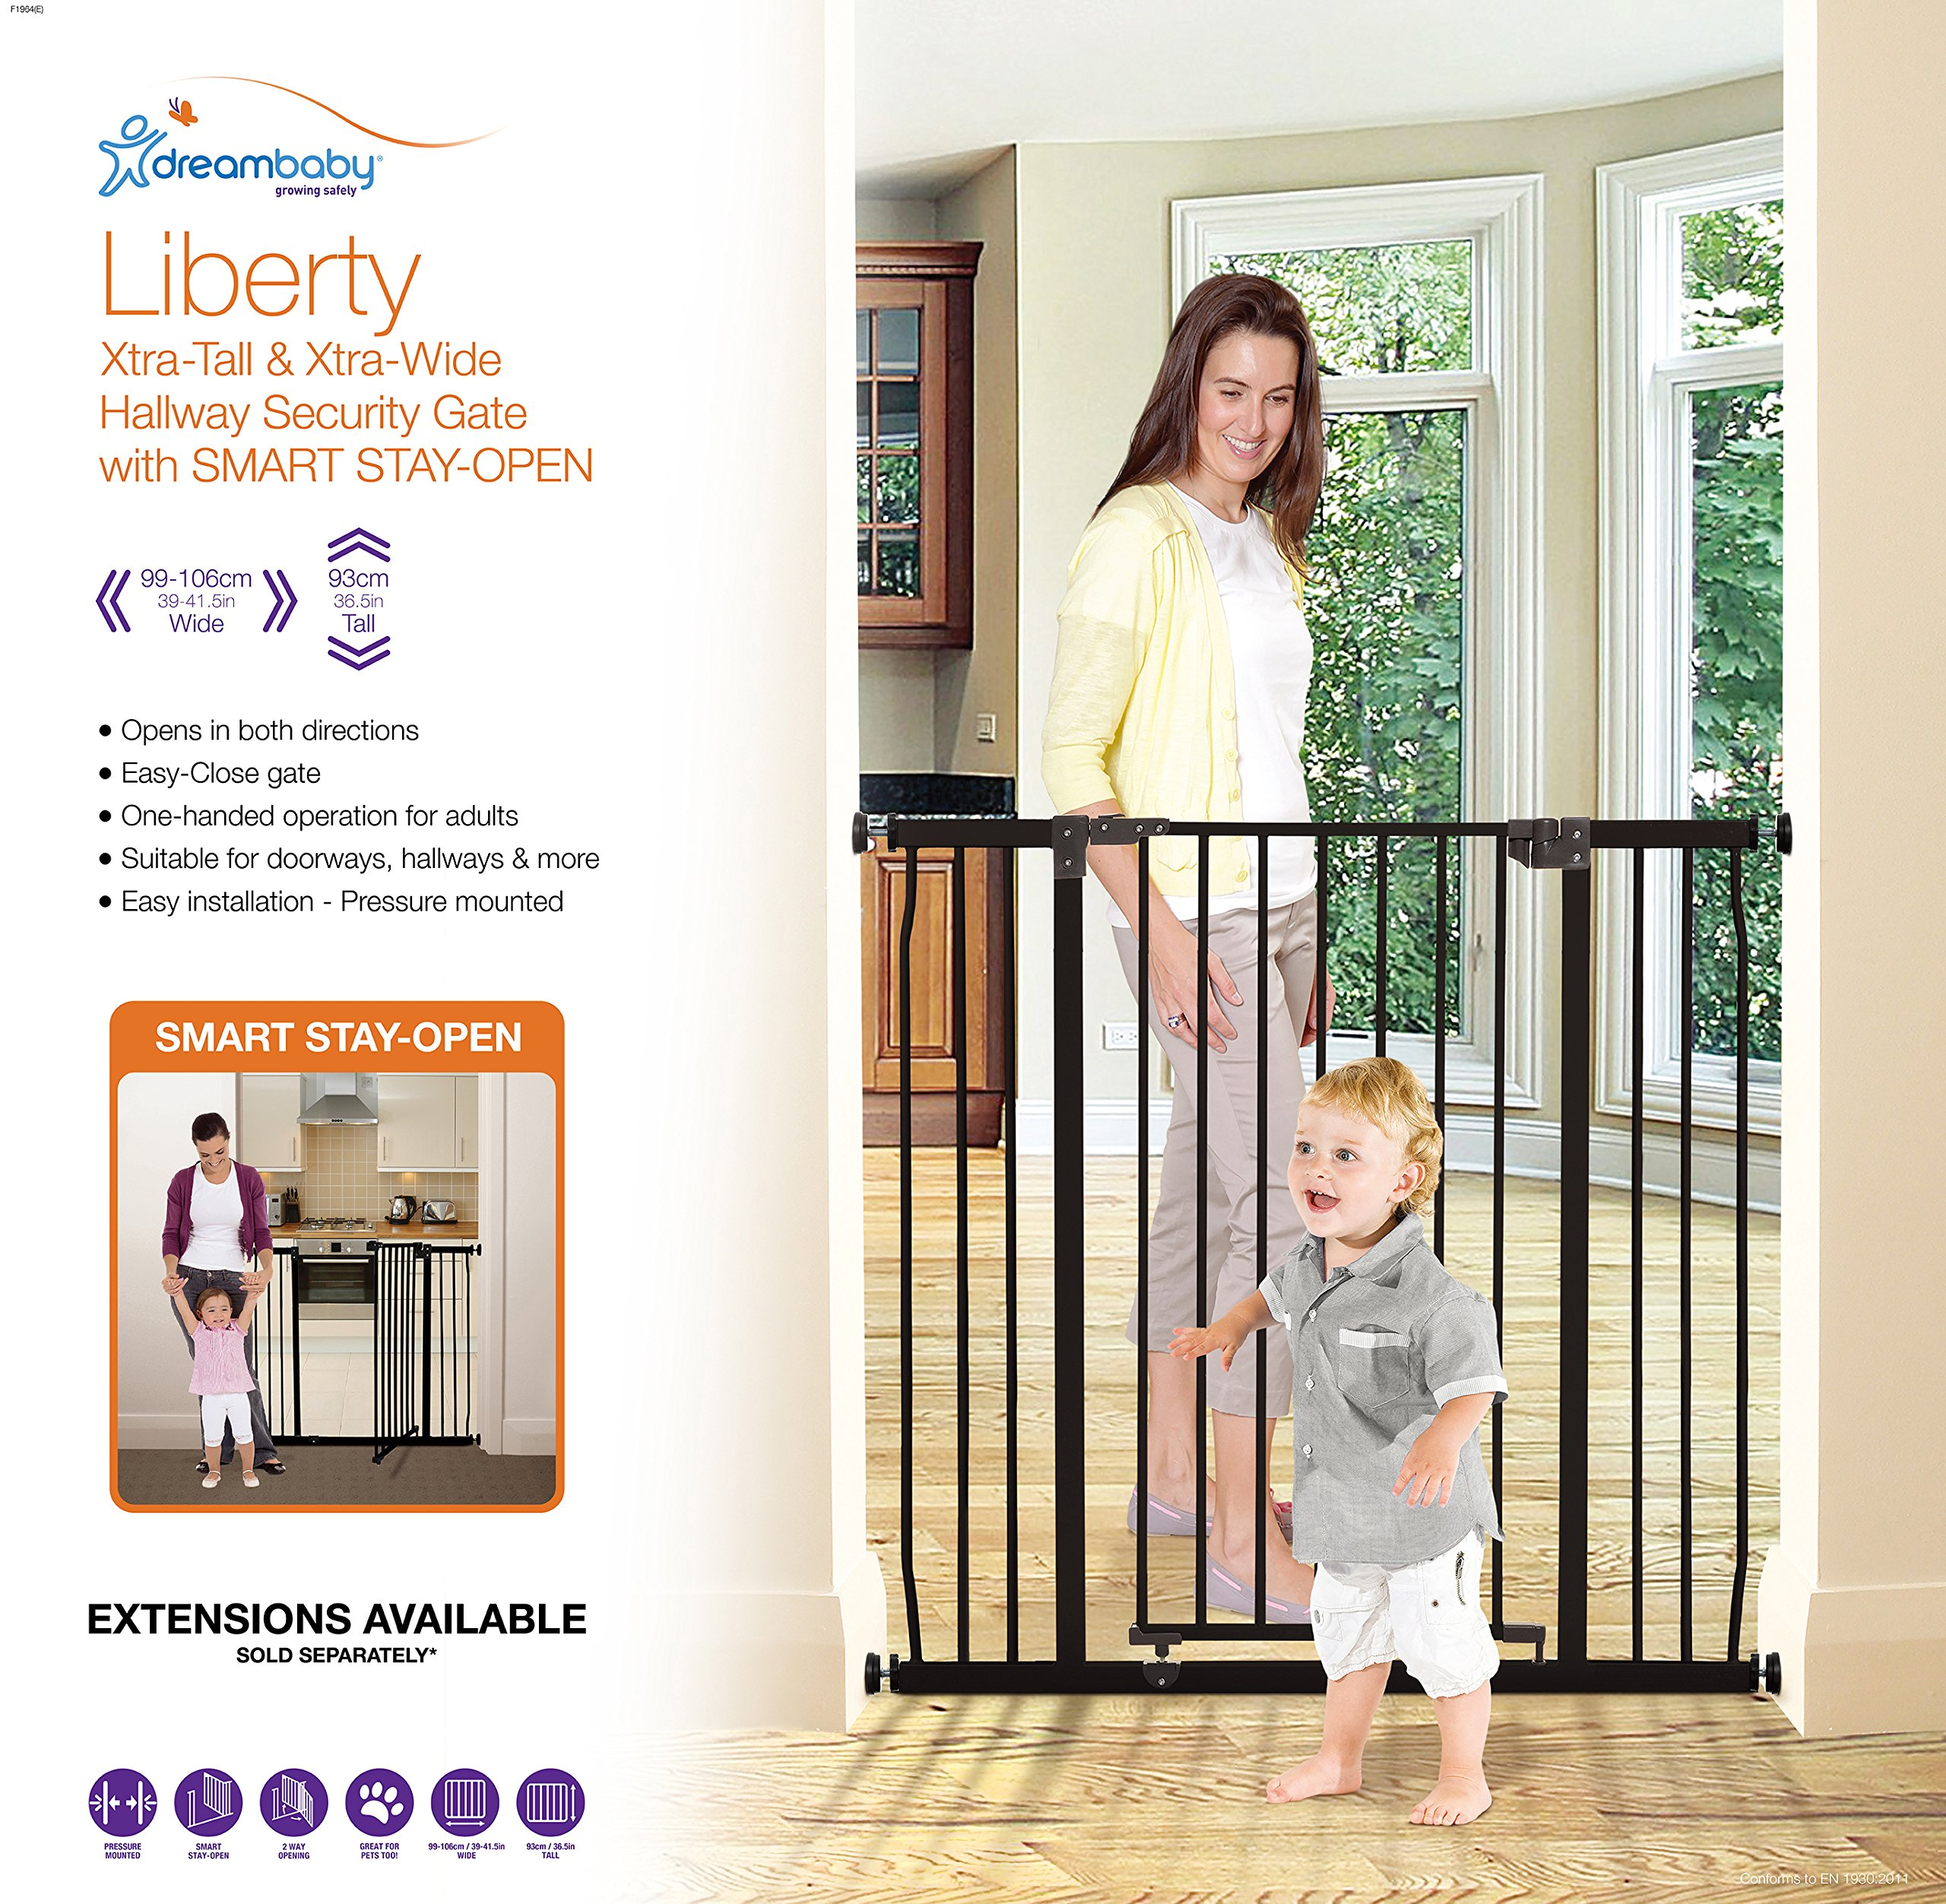 Dreambaby Liberty Xtra-Tall & Wide Safety Gate (Fits 99cm-106cm) Black Dreambaby MEASURE YOUR OPENING BEFORE PURCHASING - This gate ONLY fits openings 99 to 106 cm. It will not fit any opening smaller than 99 cm. If your opening is larger than 106 cm you will require an additional purchase of an extension. VERSATILE AND DEPENDABLE- Our Dreambaby Liberty gate is loaded with features to not only help make your life easier but safer too. Versatile indeed, it can accommodate openings of 99 to 106 cm wide and is 93 cm tall. Using optional extensions sold separately, the gate can be extended up to 306 cm. ONE HANDED OPERATION - The One-Handed operation is fantastic for times when you're holding your child and the double locking feature ensures extra security to help keep your child safer. 7